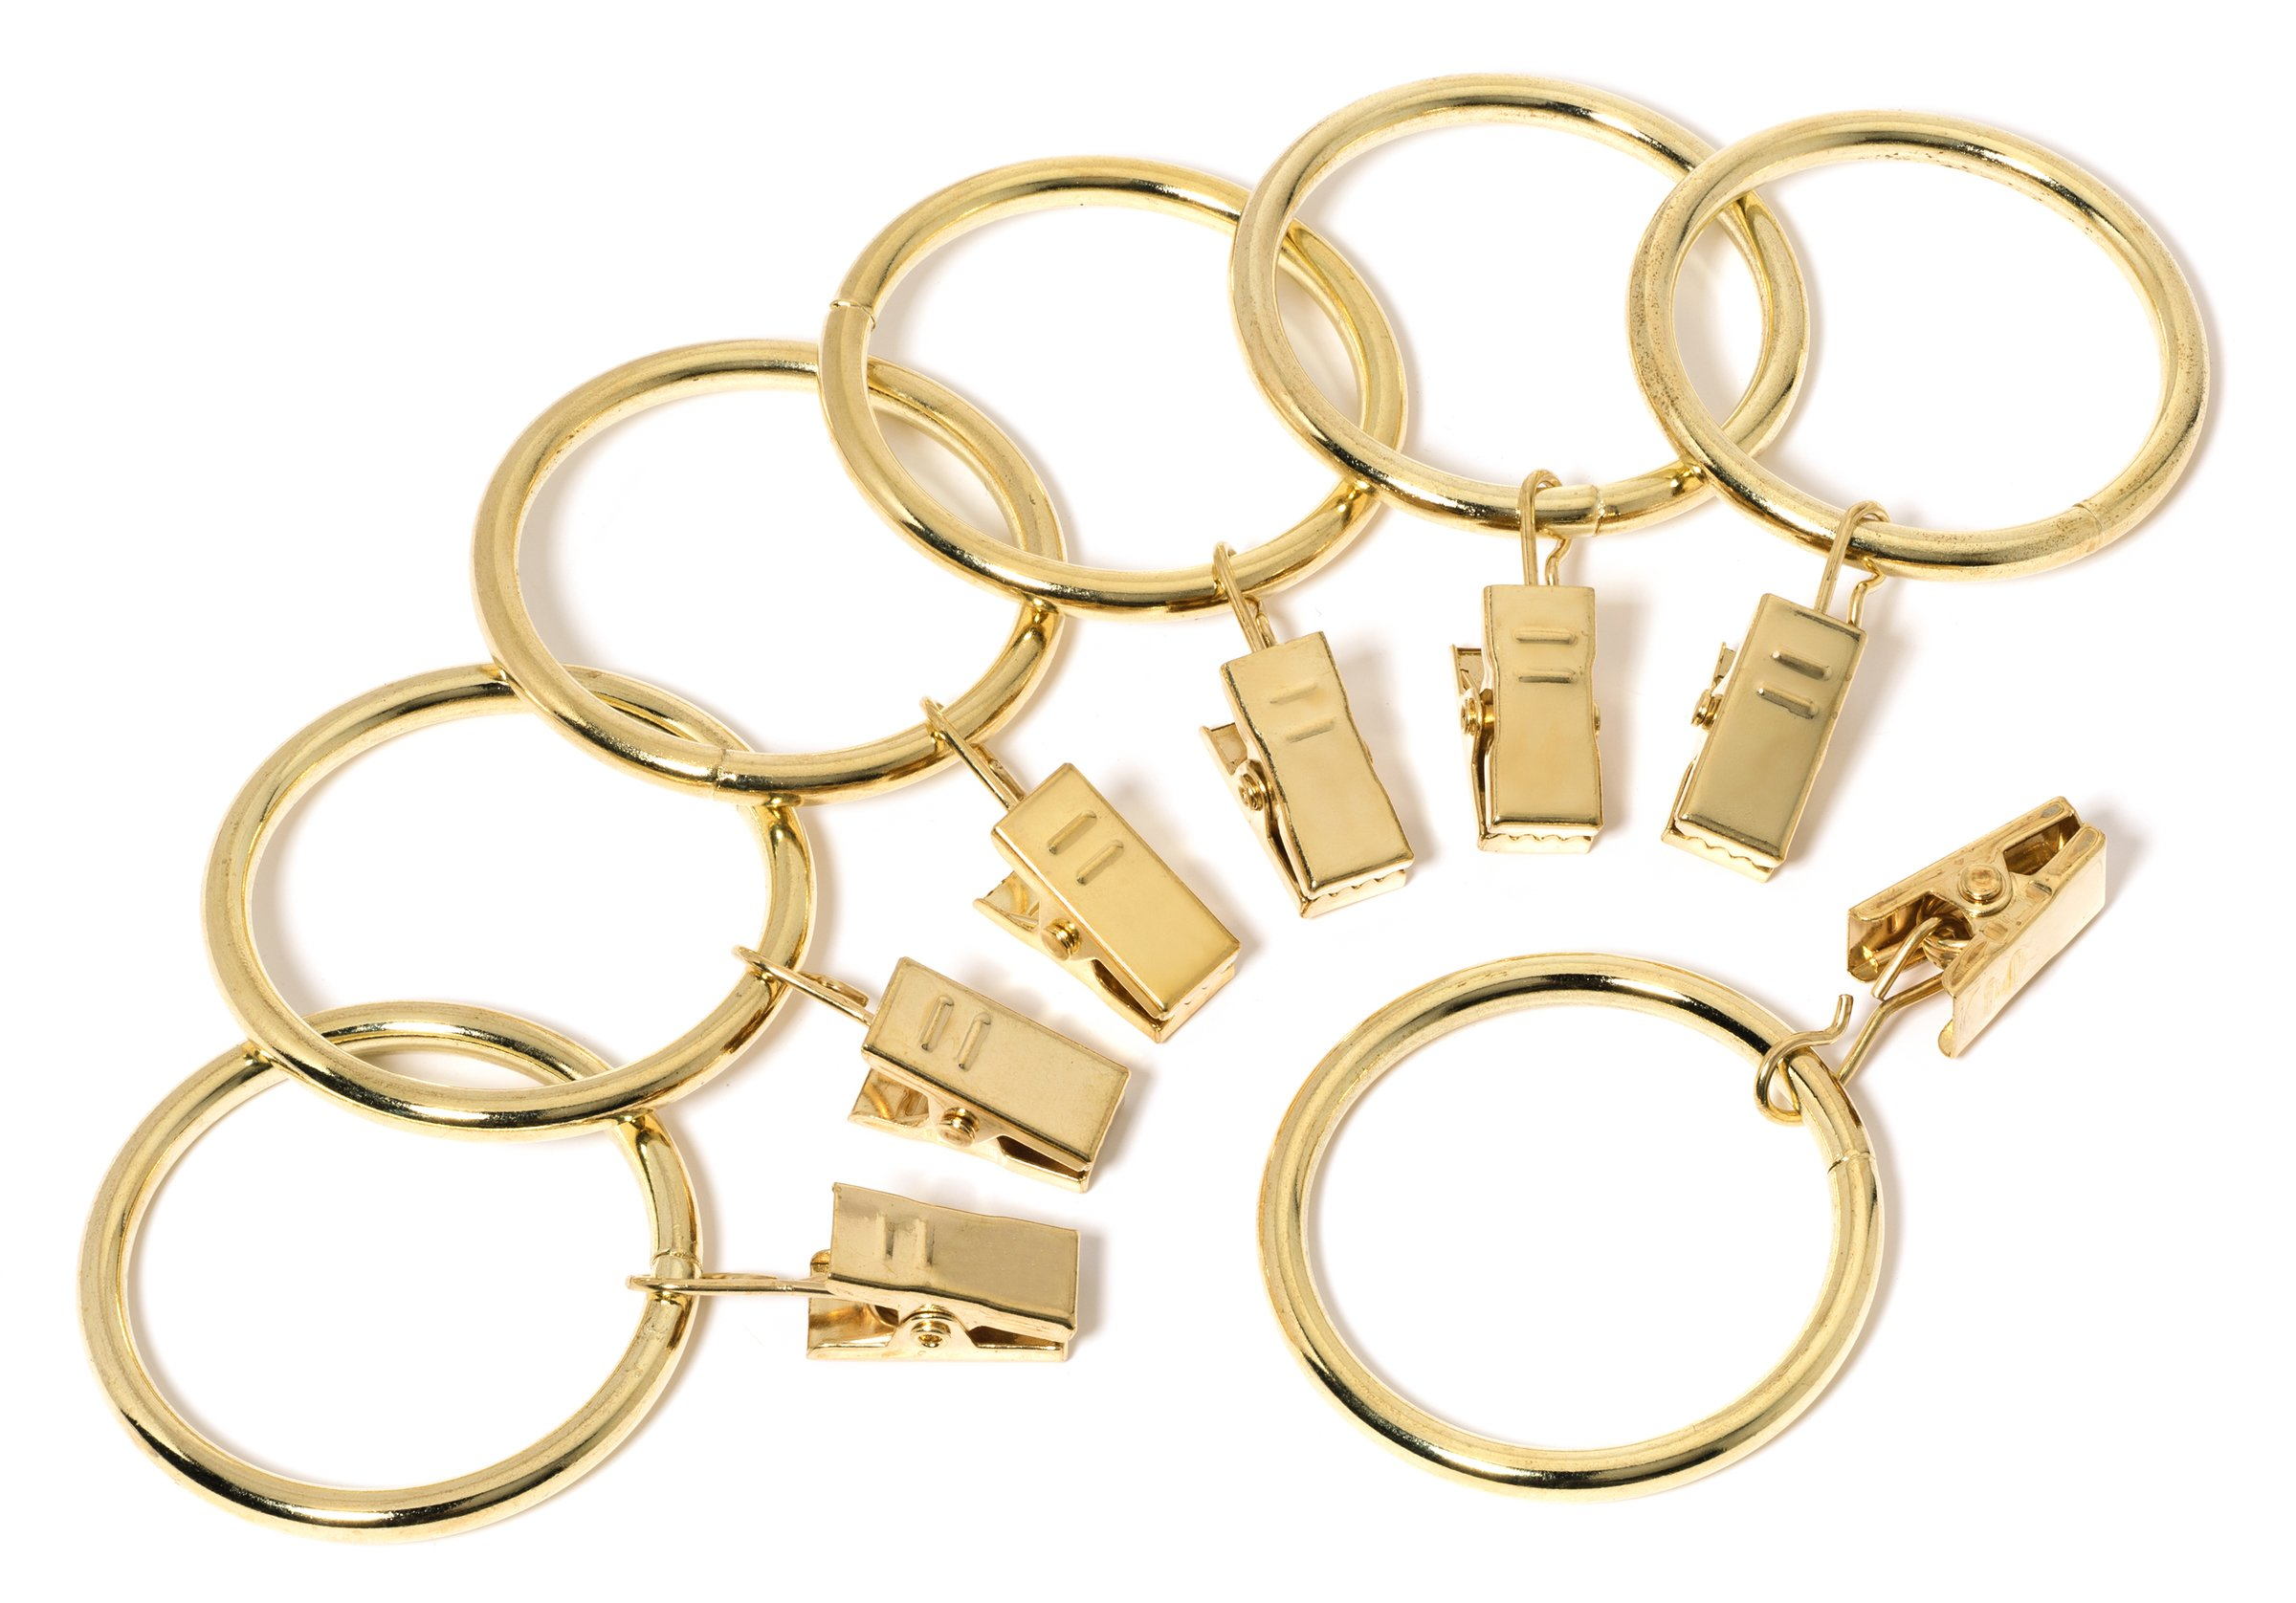 Perfect Order Iron Metal Curtain Clip Rings 2 Inch Interior Diameter Set of 14 (Gold)